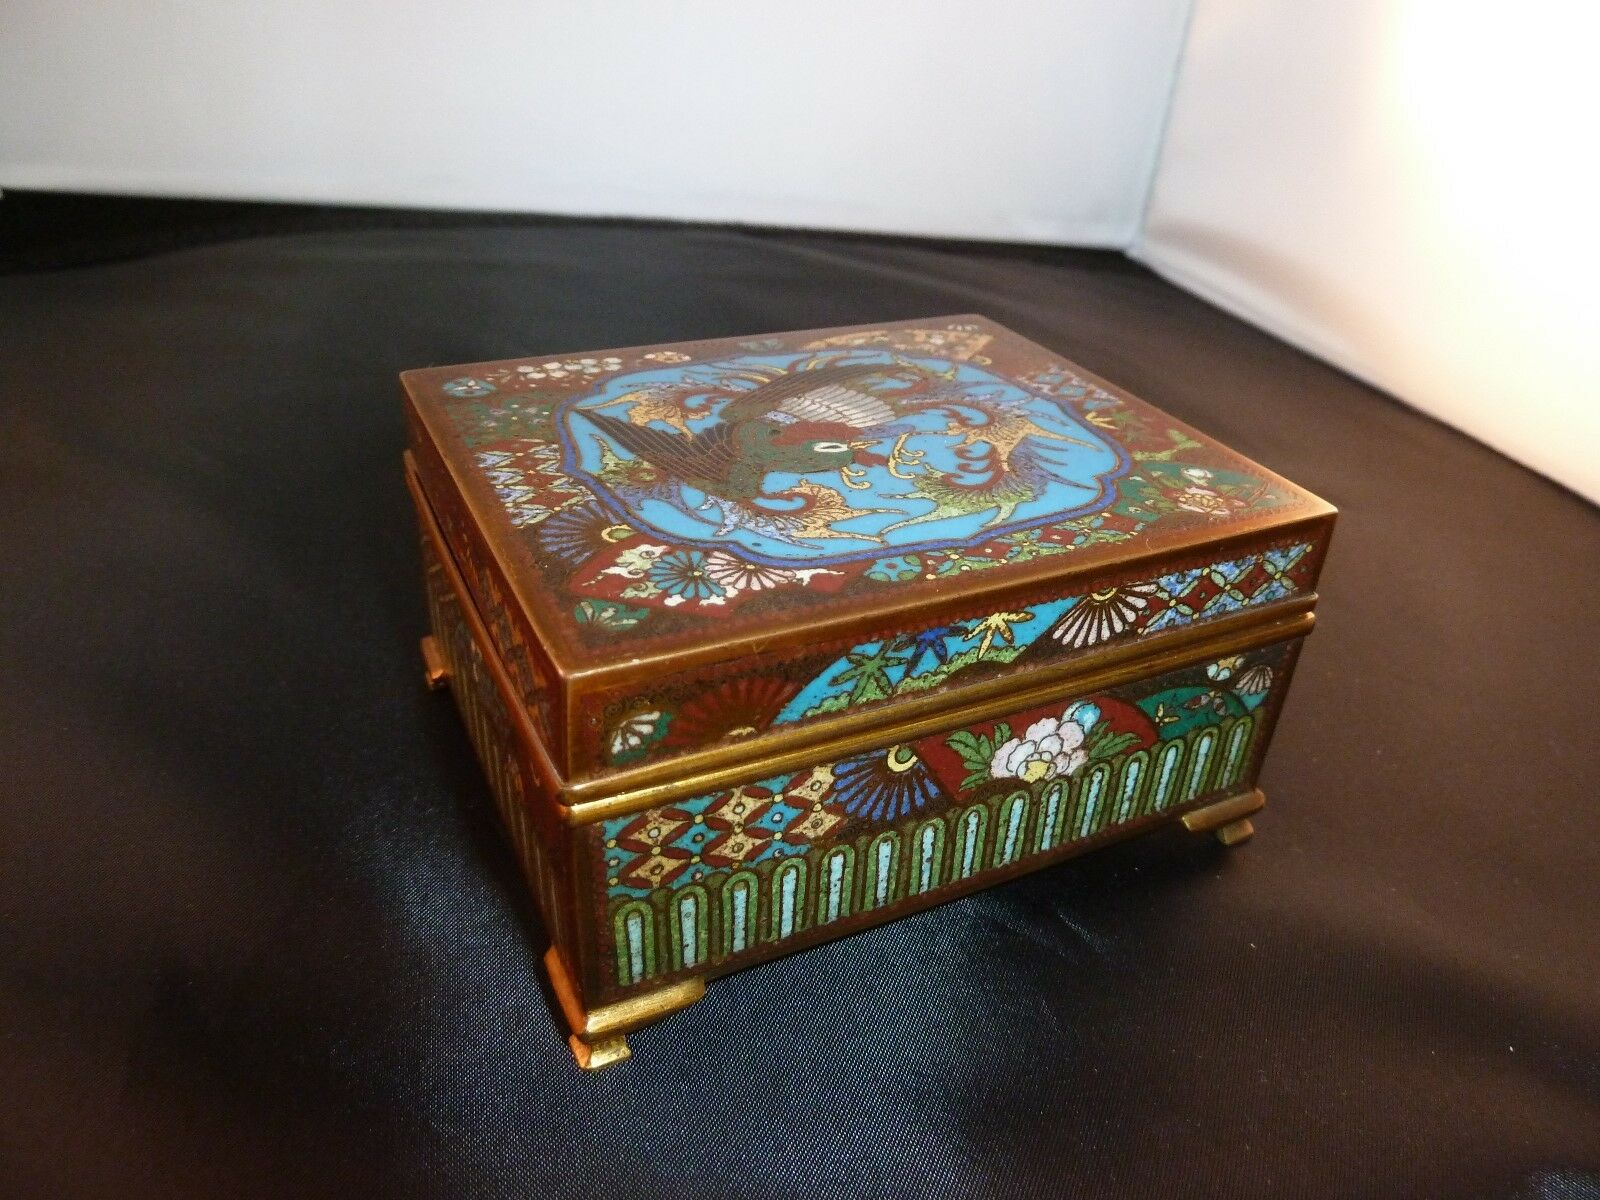 Antique Japanese Meiji Period (1852-1912) Cloisonne-Enamel Bronze Hinged Box.